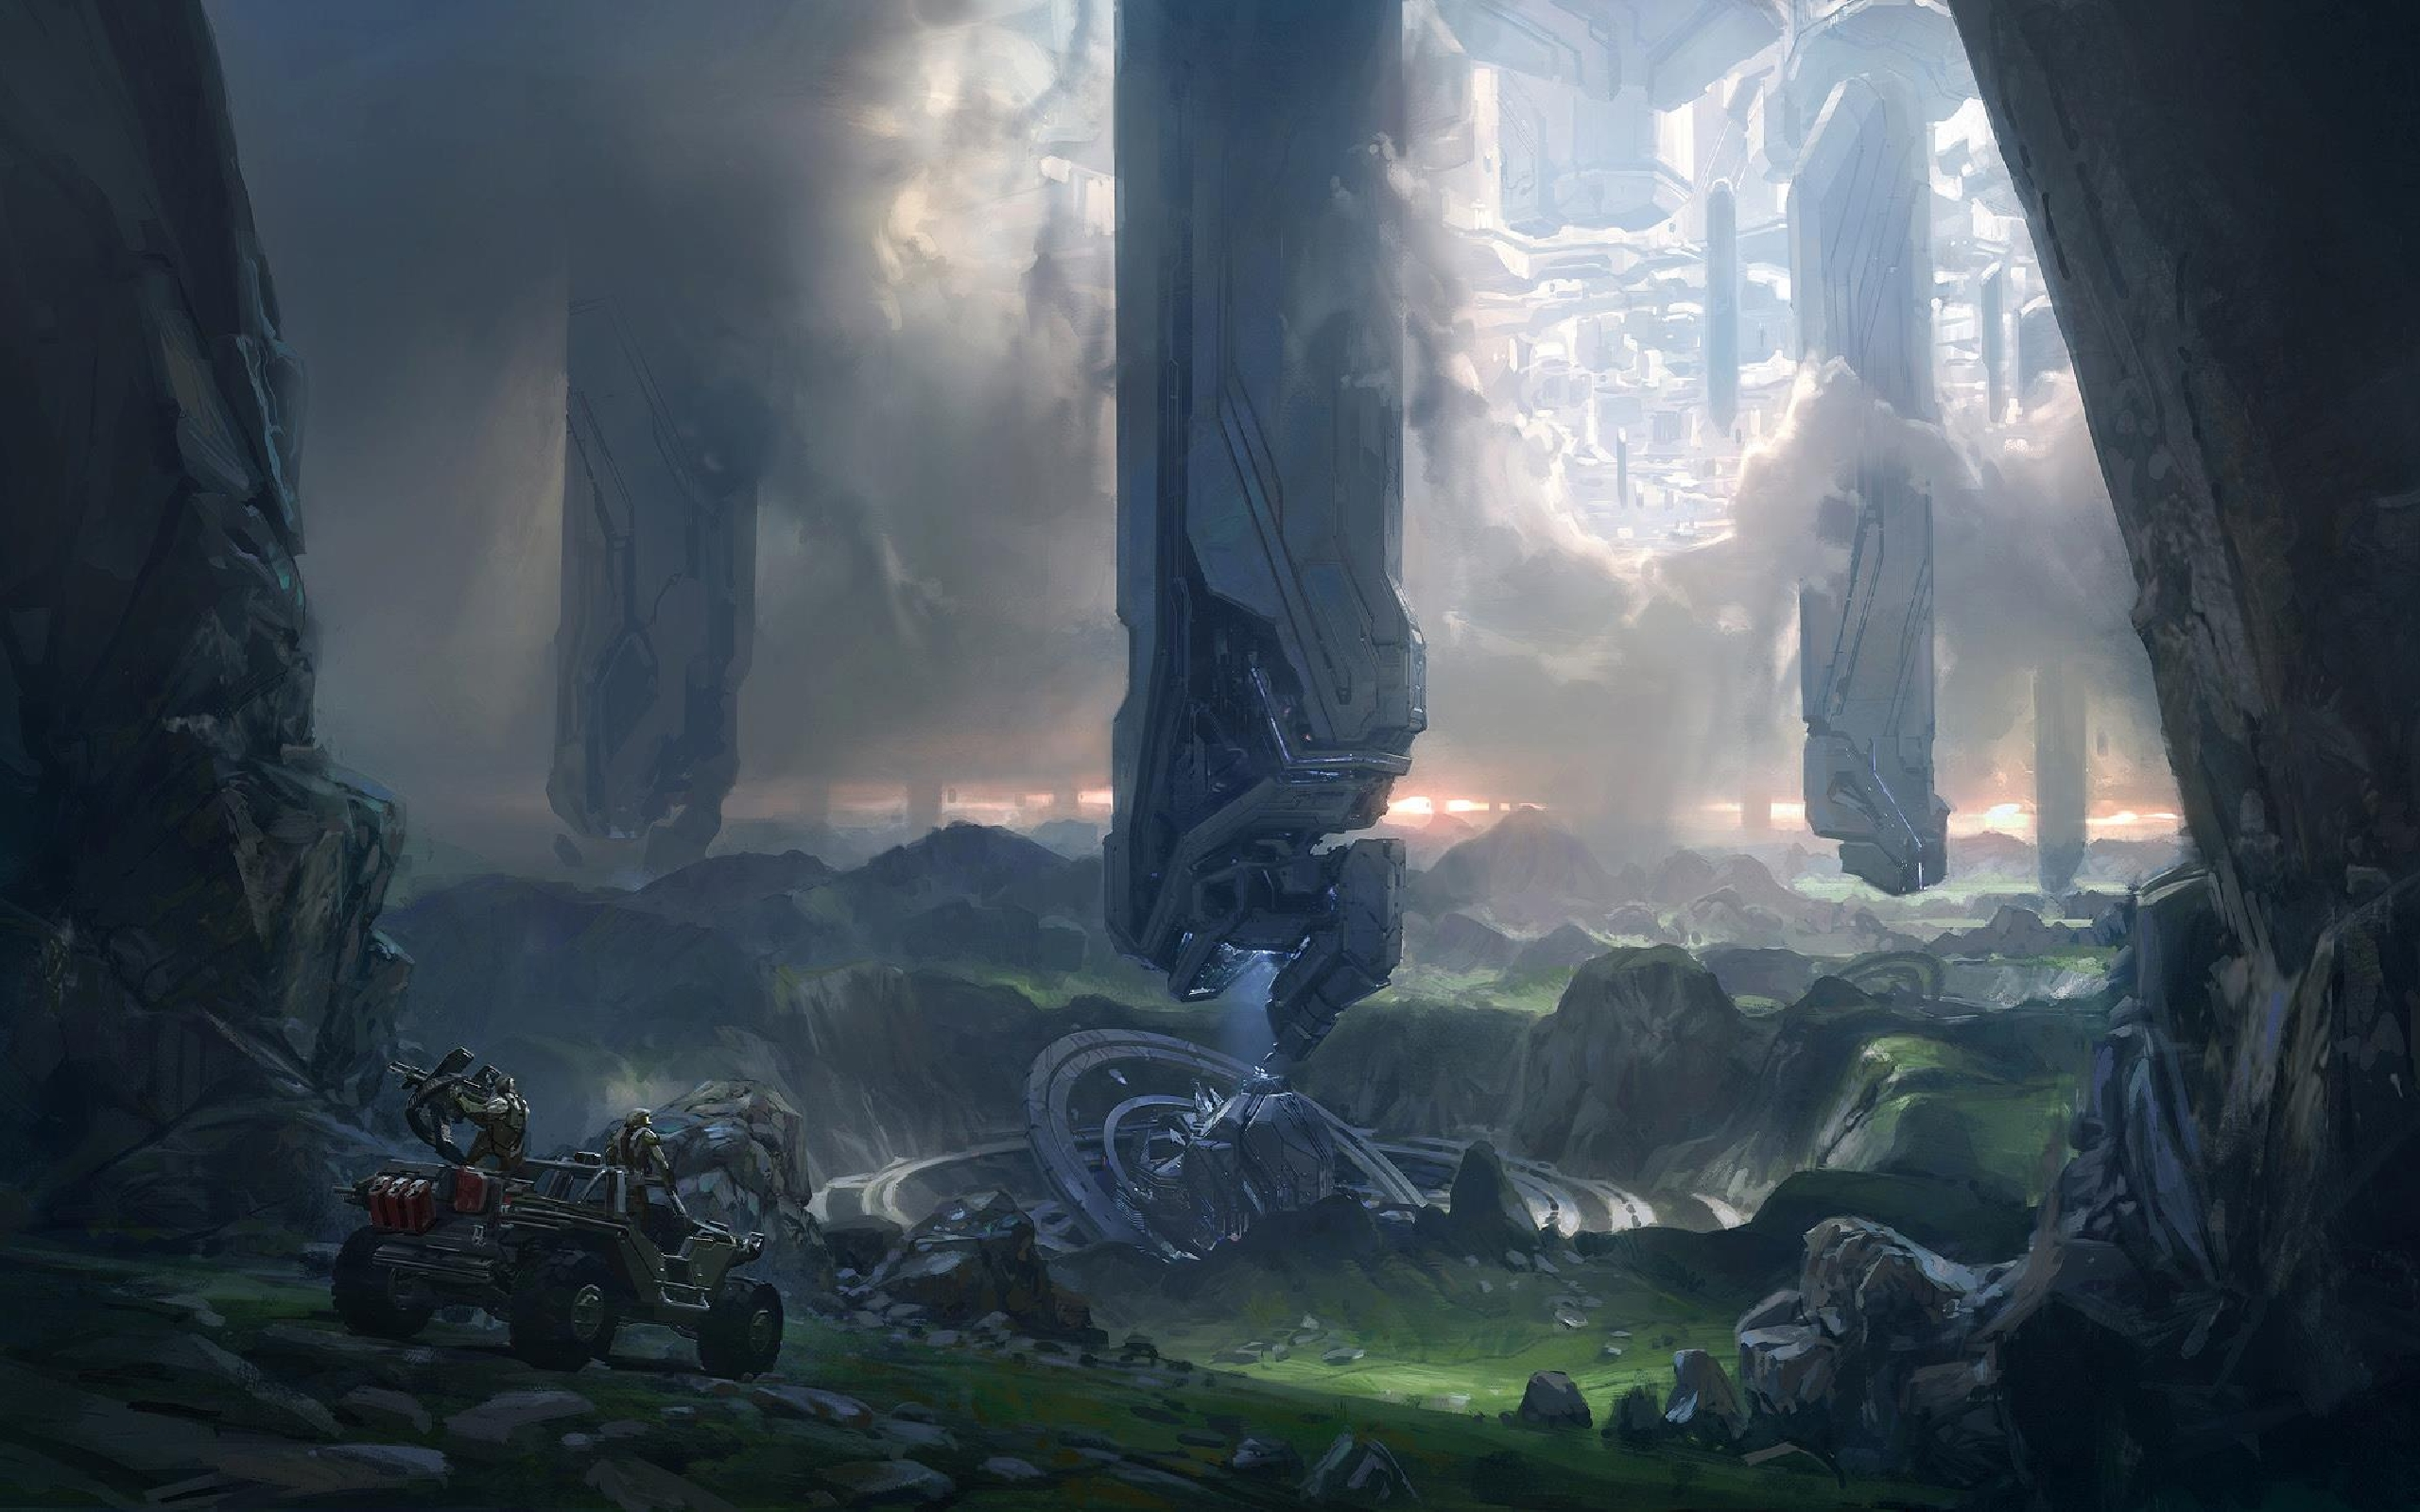 halo 4 full hd wallpaper and background | 2560x1600 | id:328249